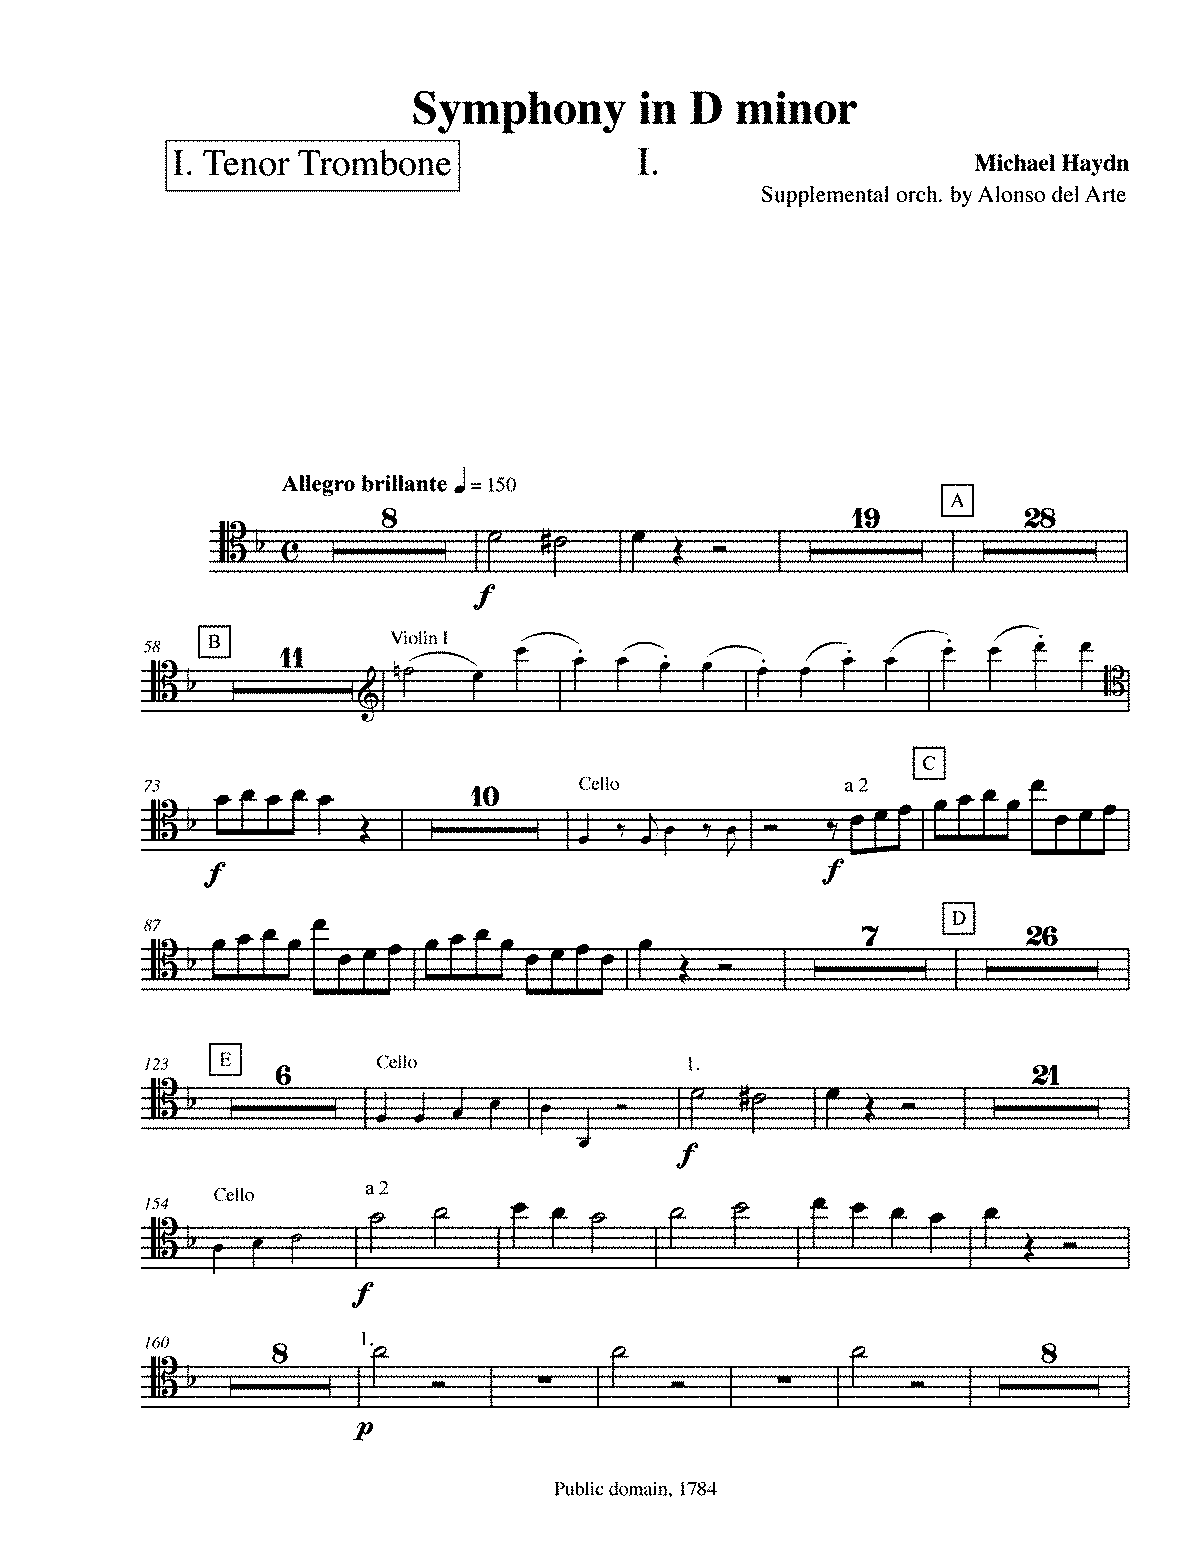 PMLP162195-HSymDm supplOrch - I. Tenor Trombone.pdf